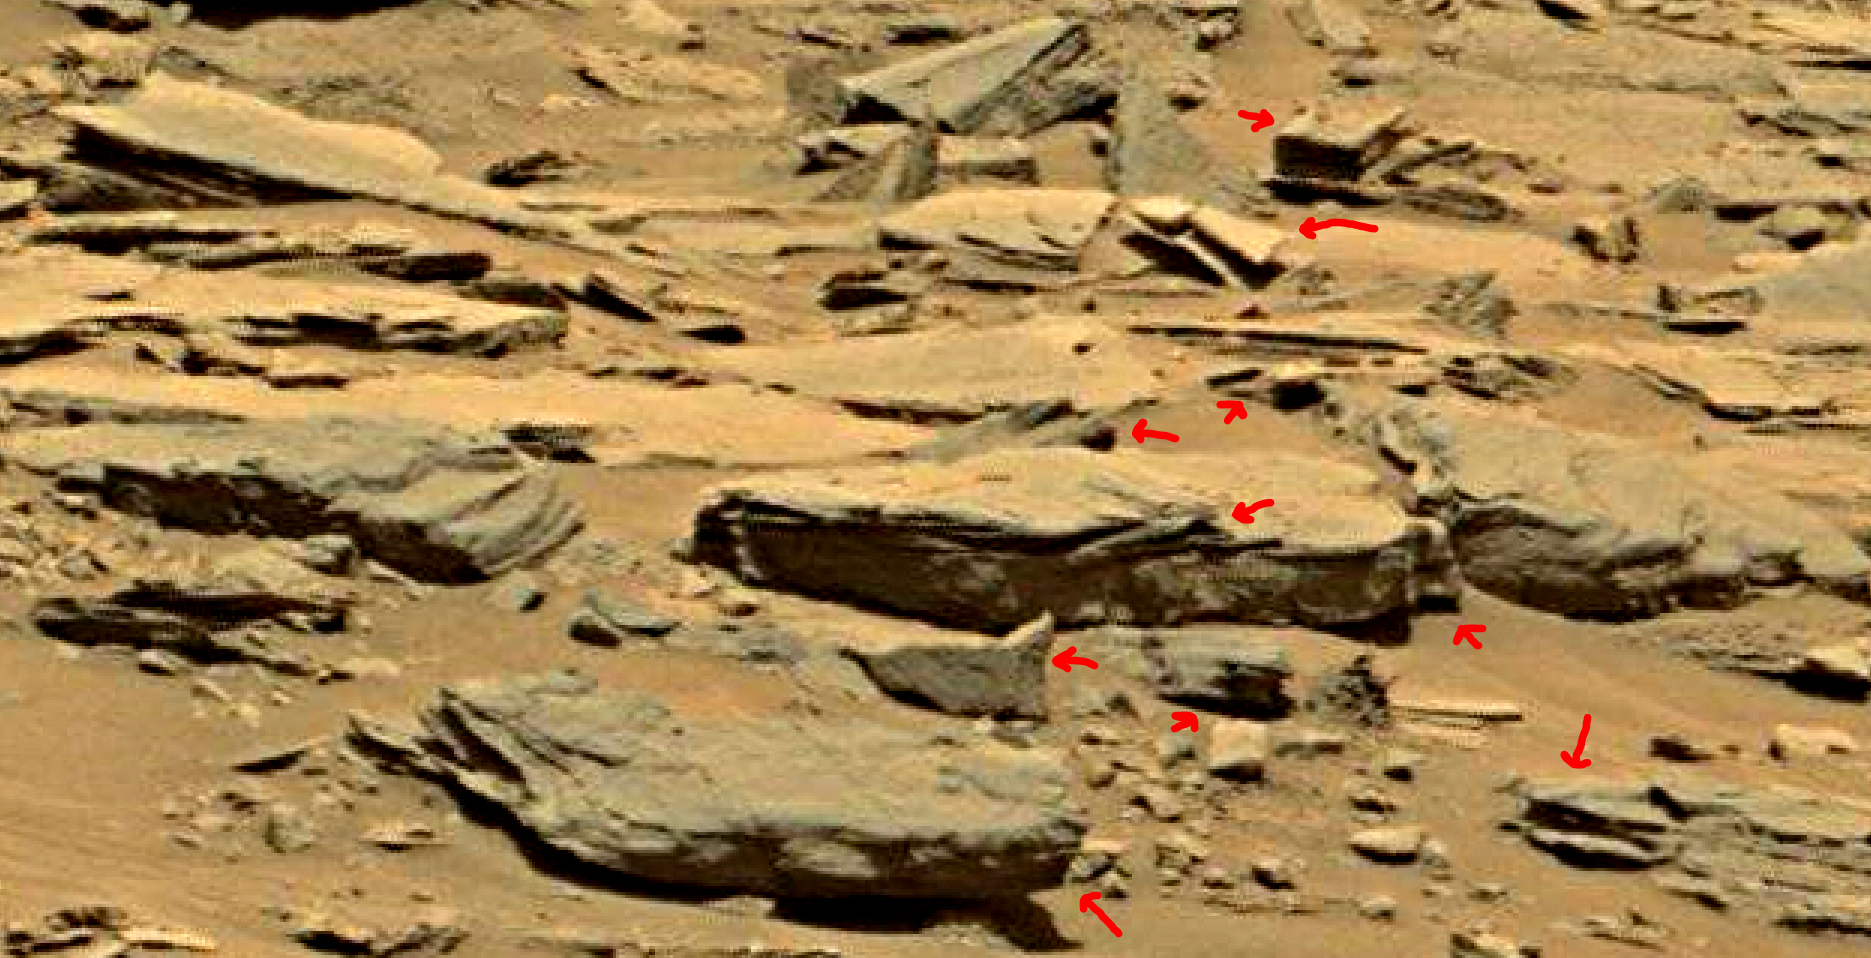 mars sol 1353 anomaly-artifacts 34a was life on mars